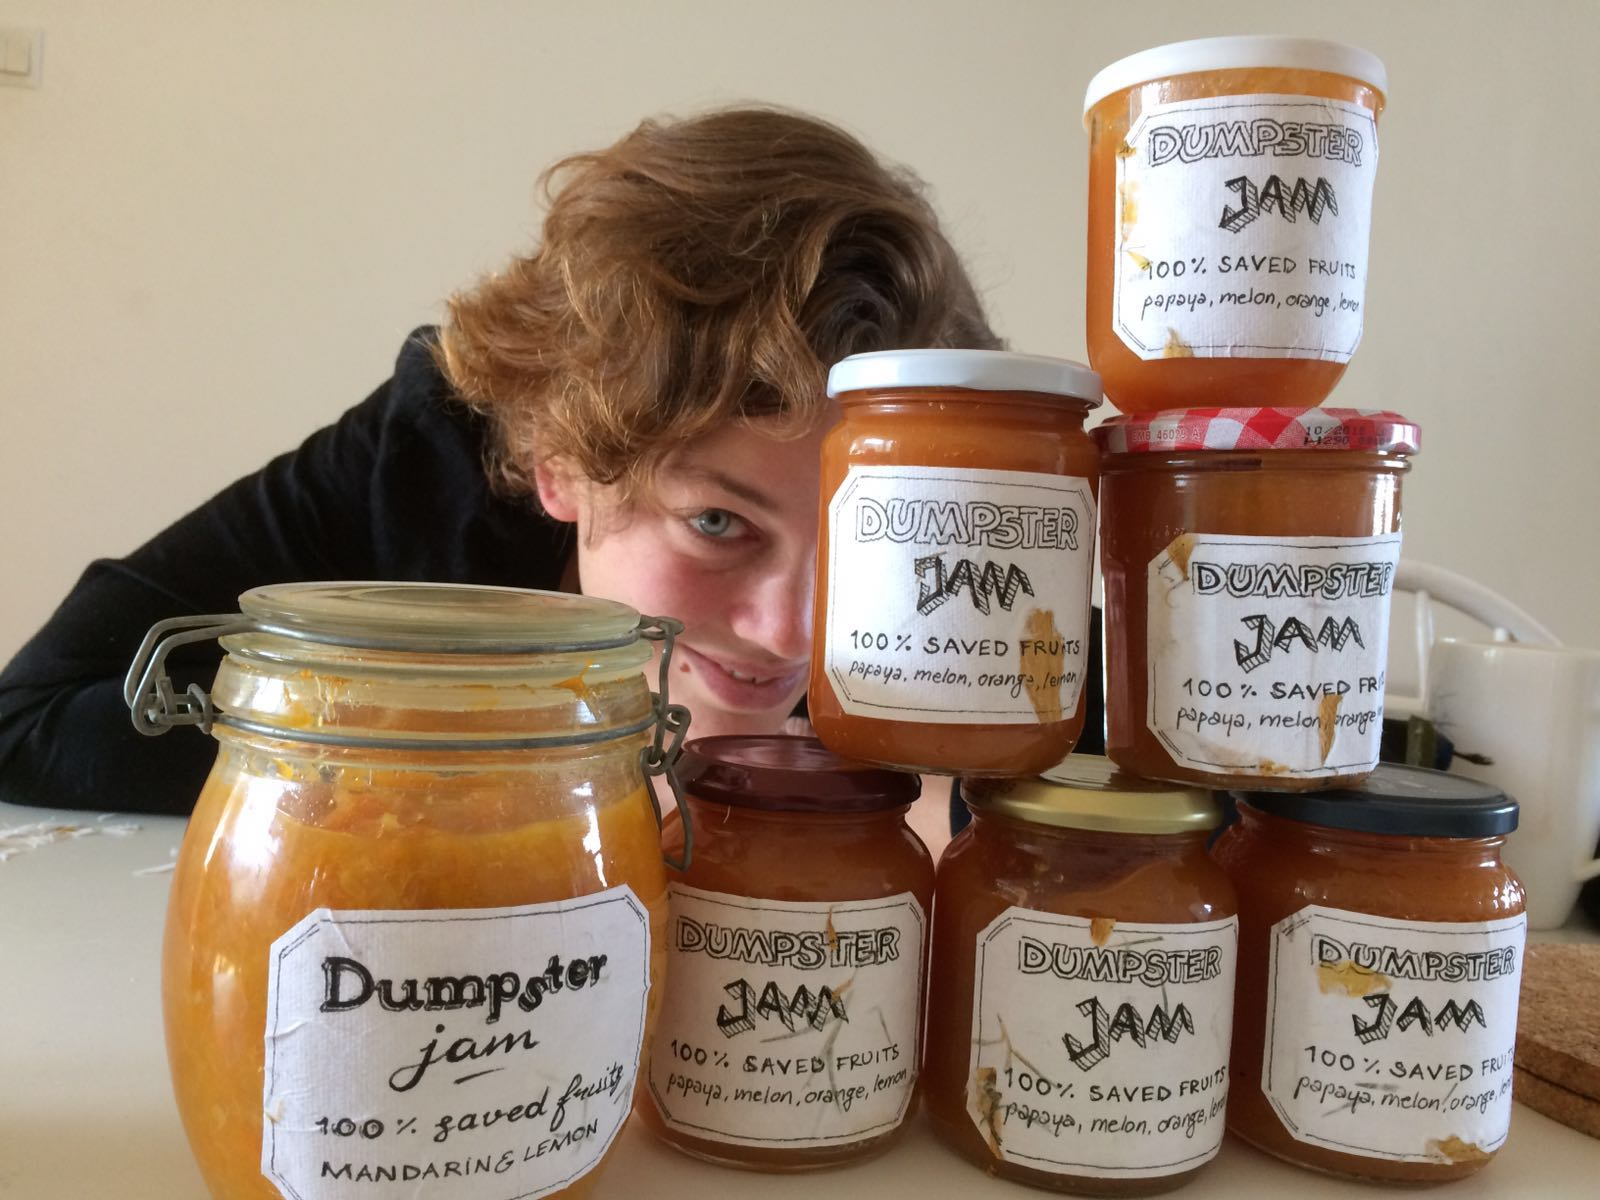 Dumpster diving making jam rescued saved wasted fruits fighting food waste